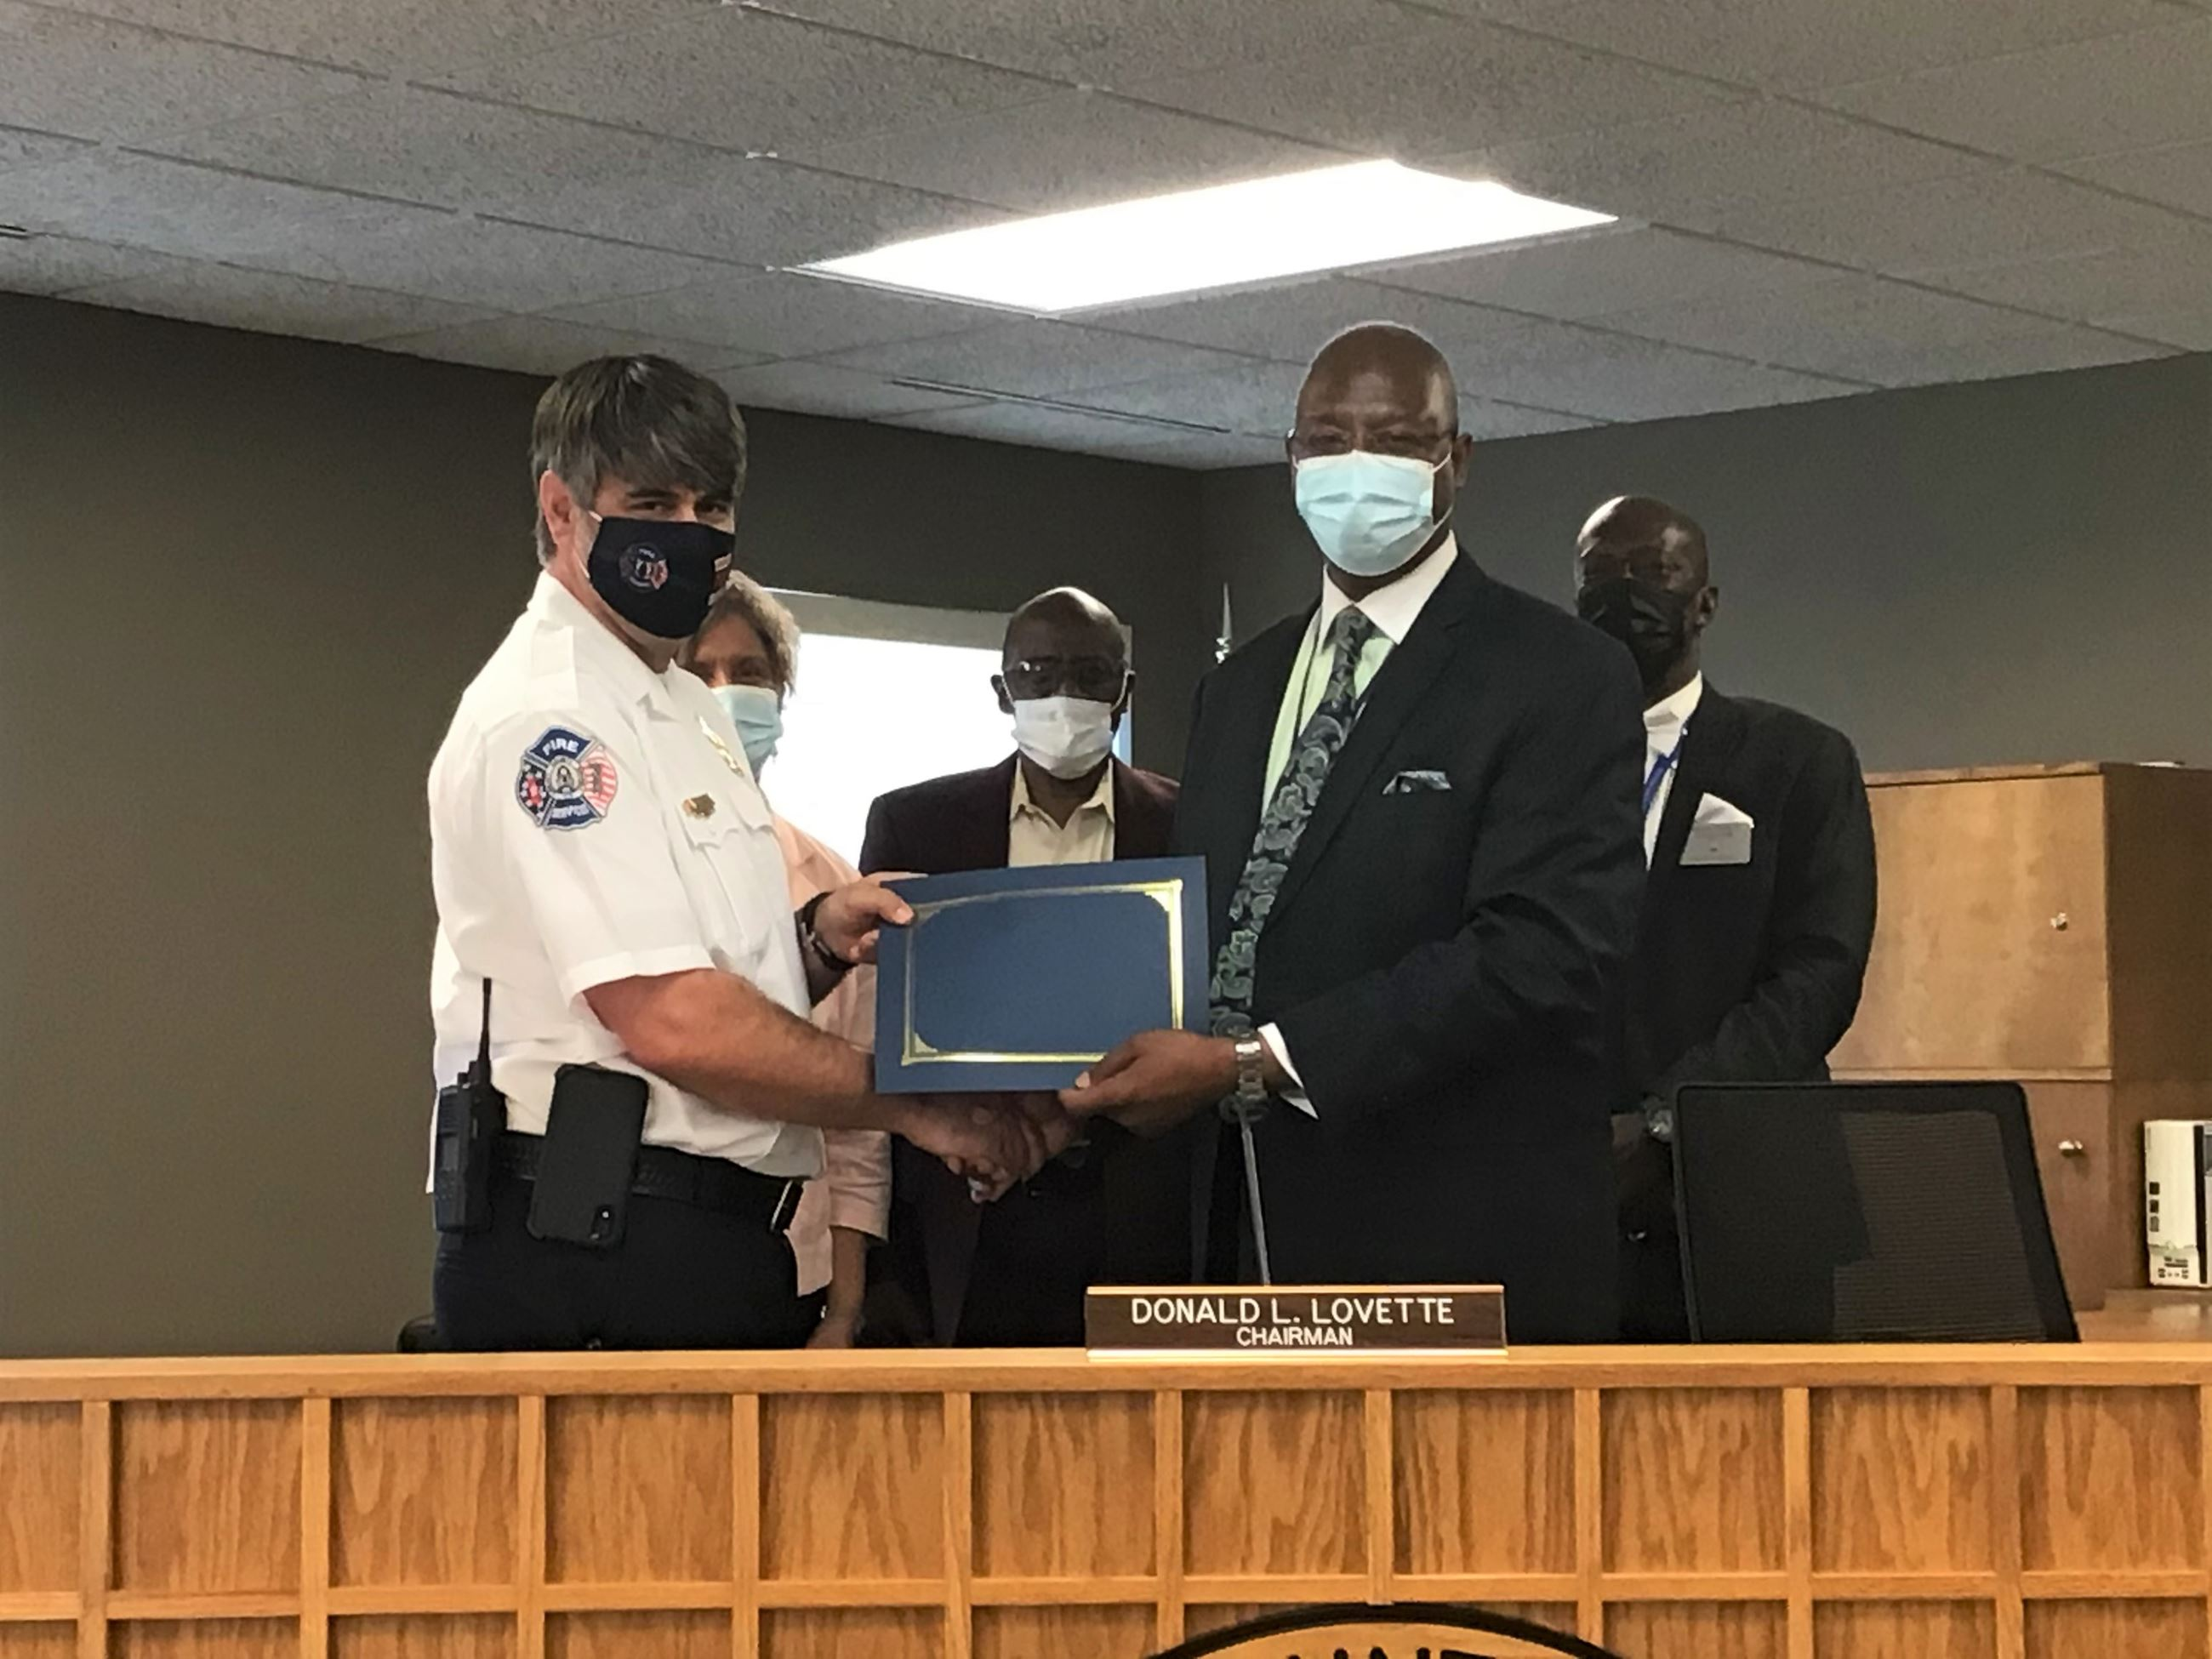 Recognition of Deputy Fire Chief Huffman